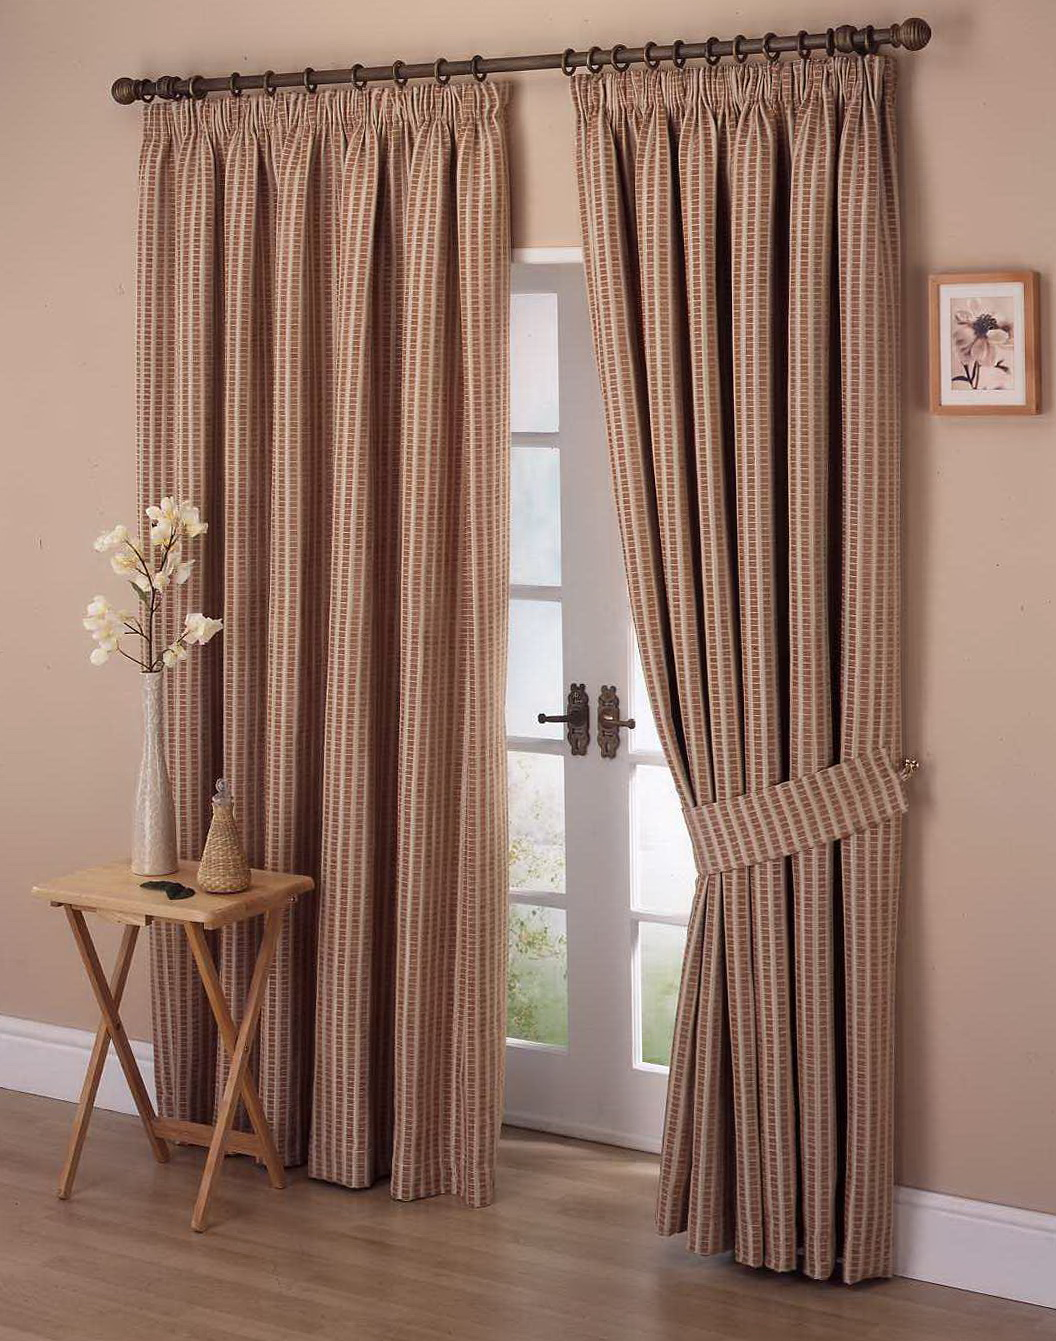 Living room curtain designs 2014 home design ideas for Living room curtain ideas